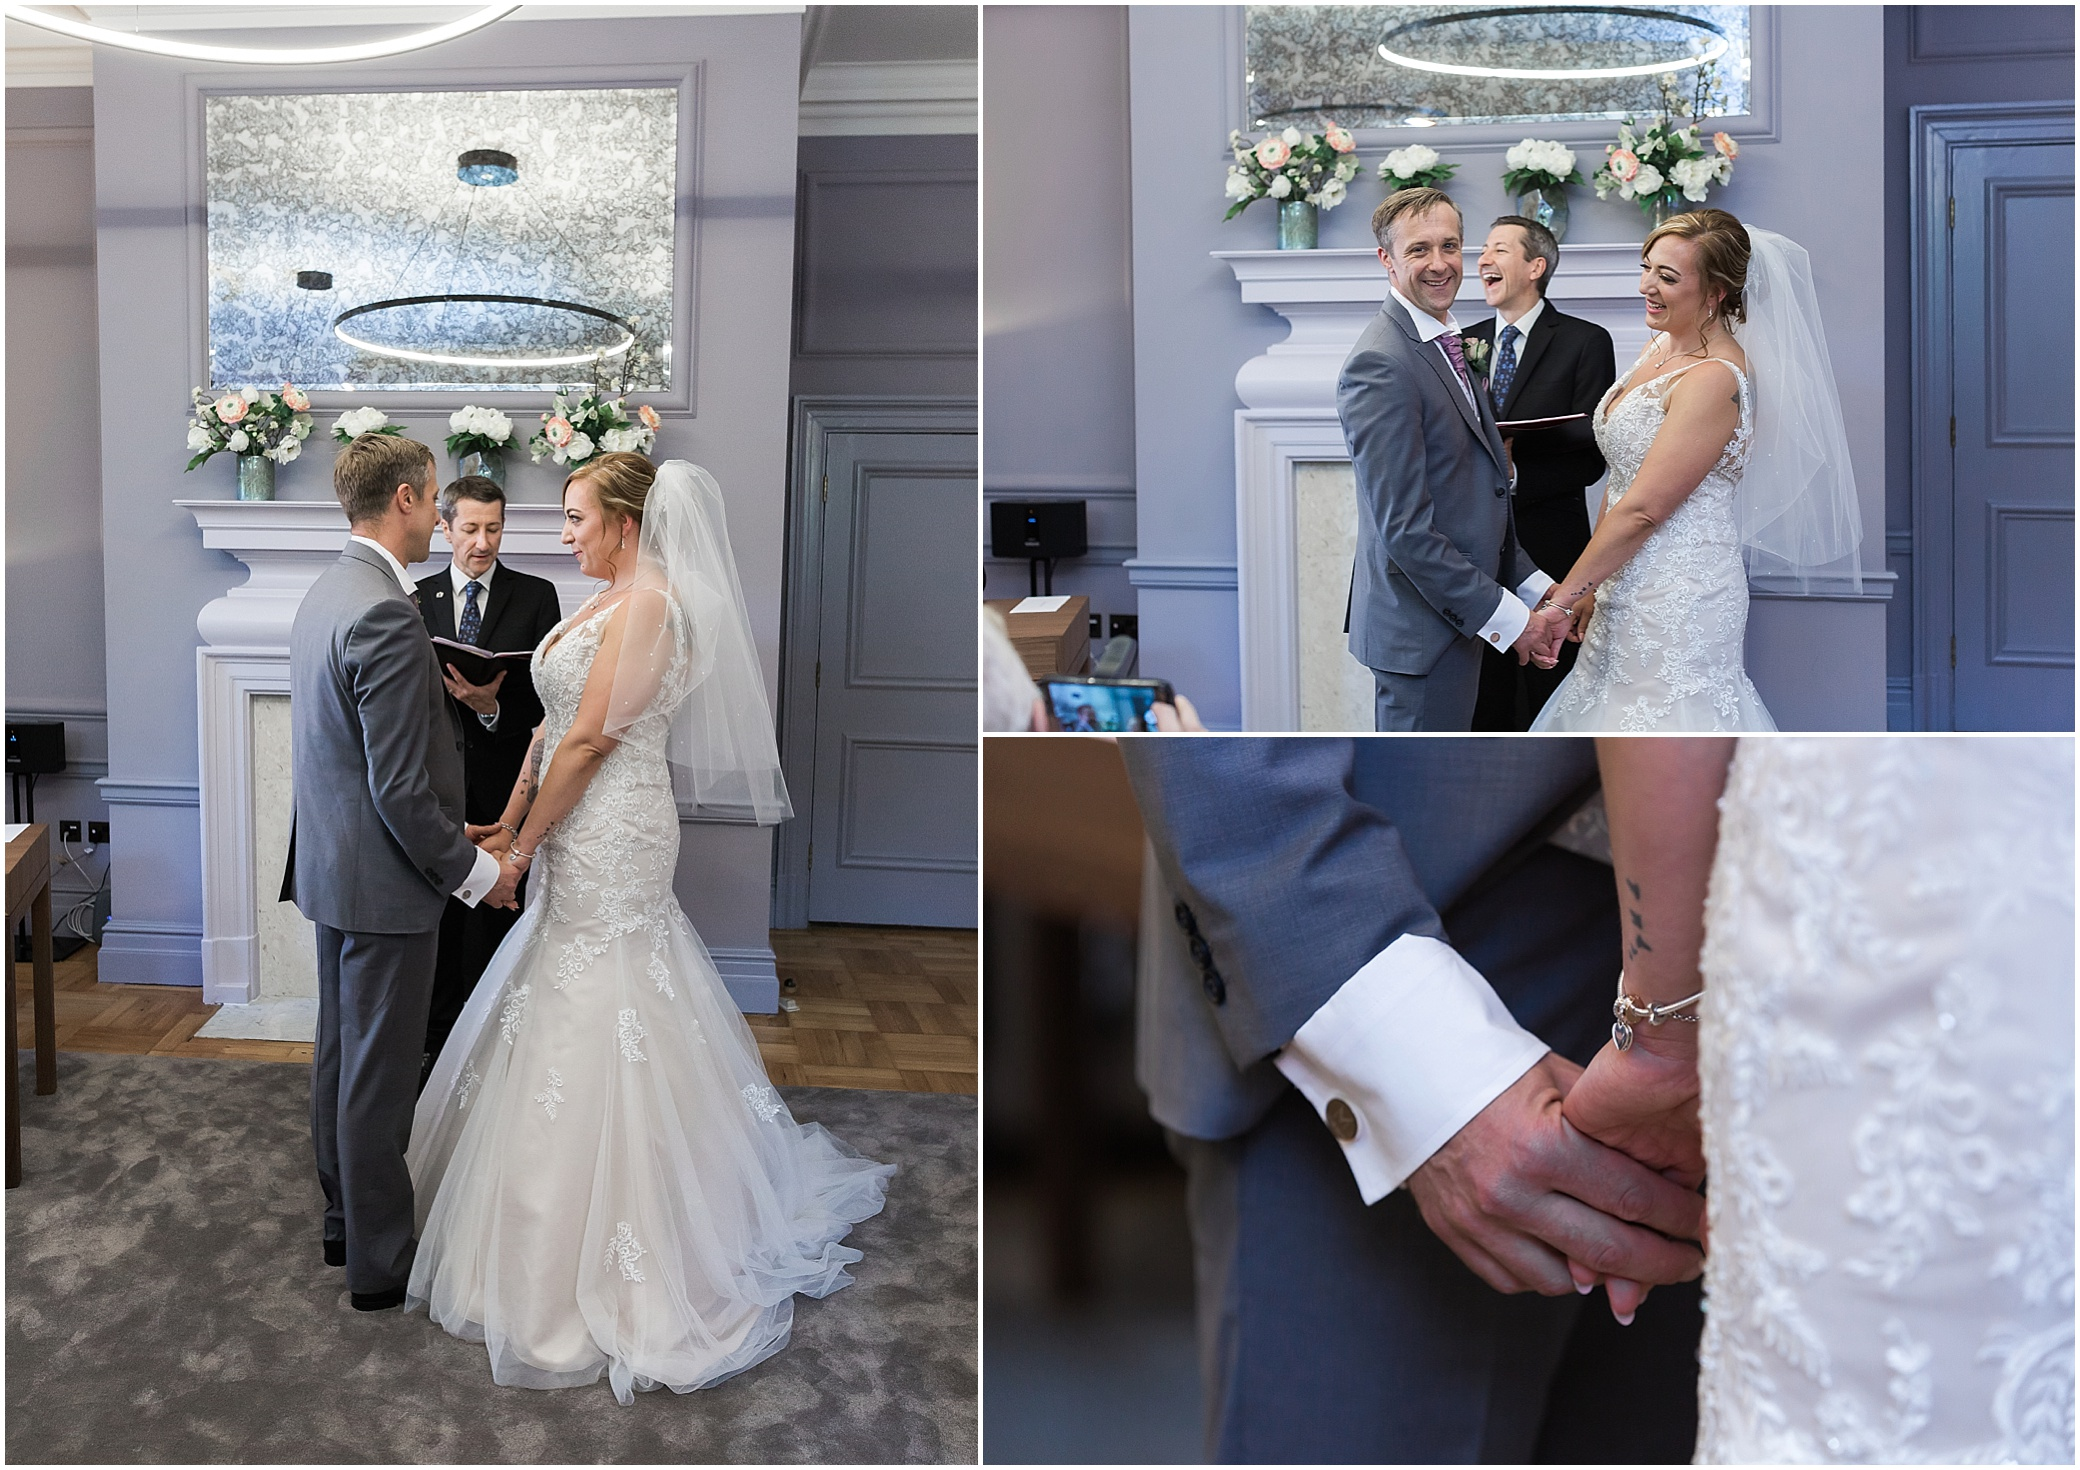 Couple getting married in the Knightsbridge room at Marylebone town hall in London